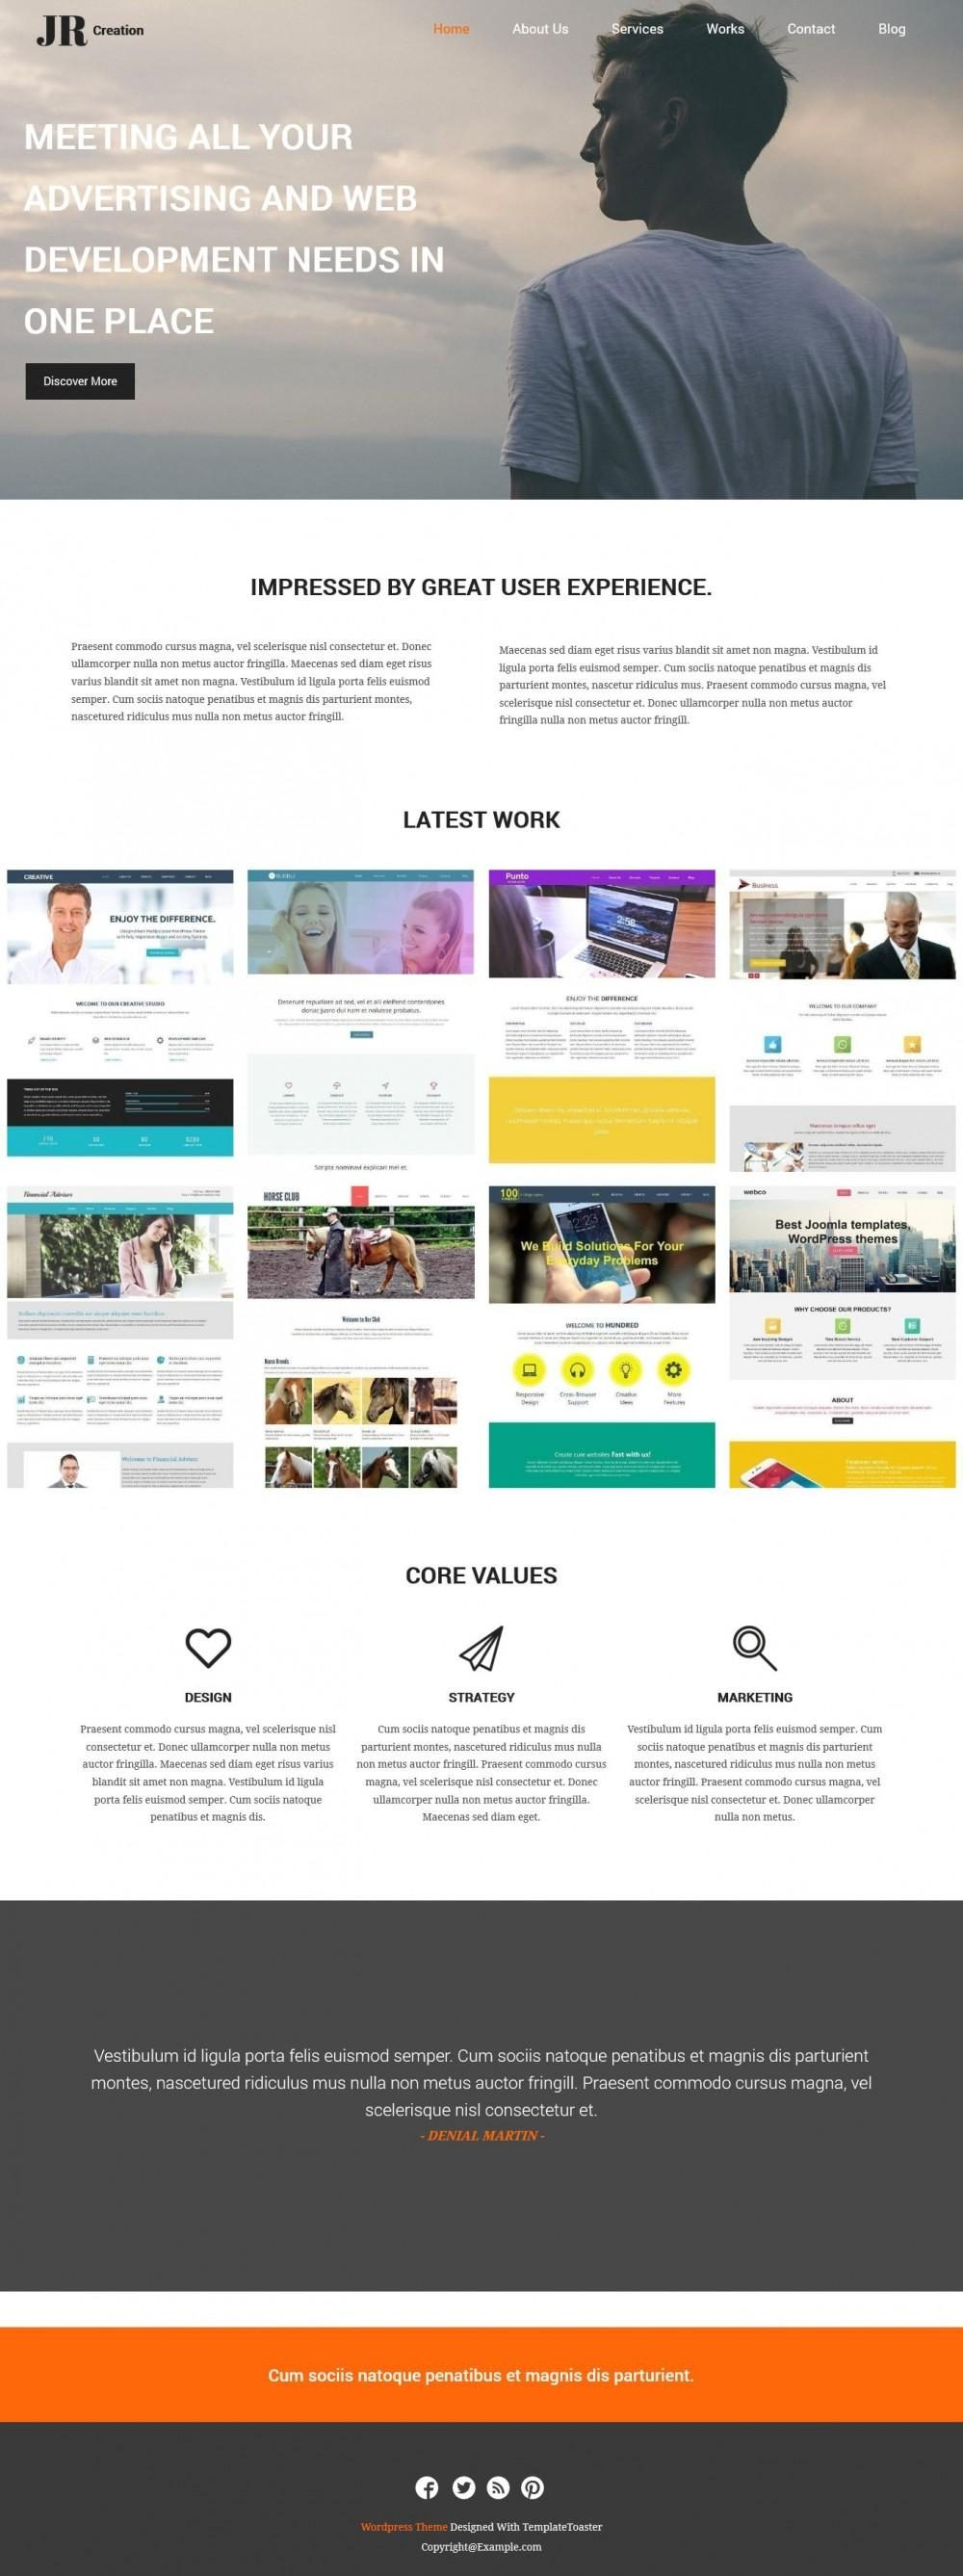 JR Creation – Web Designer And Developer Drupal Theme